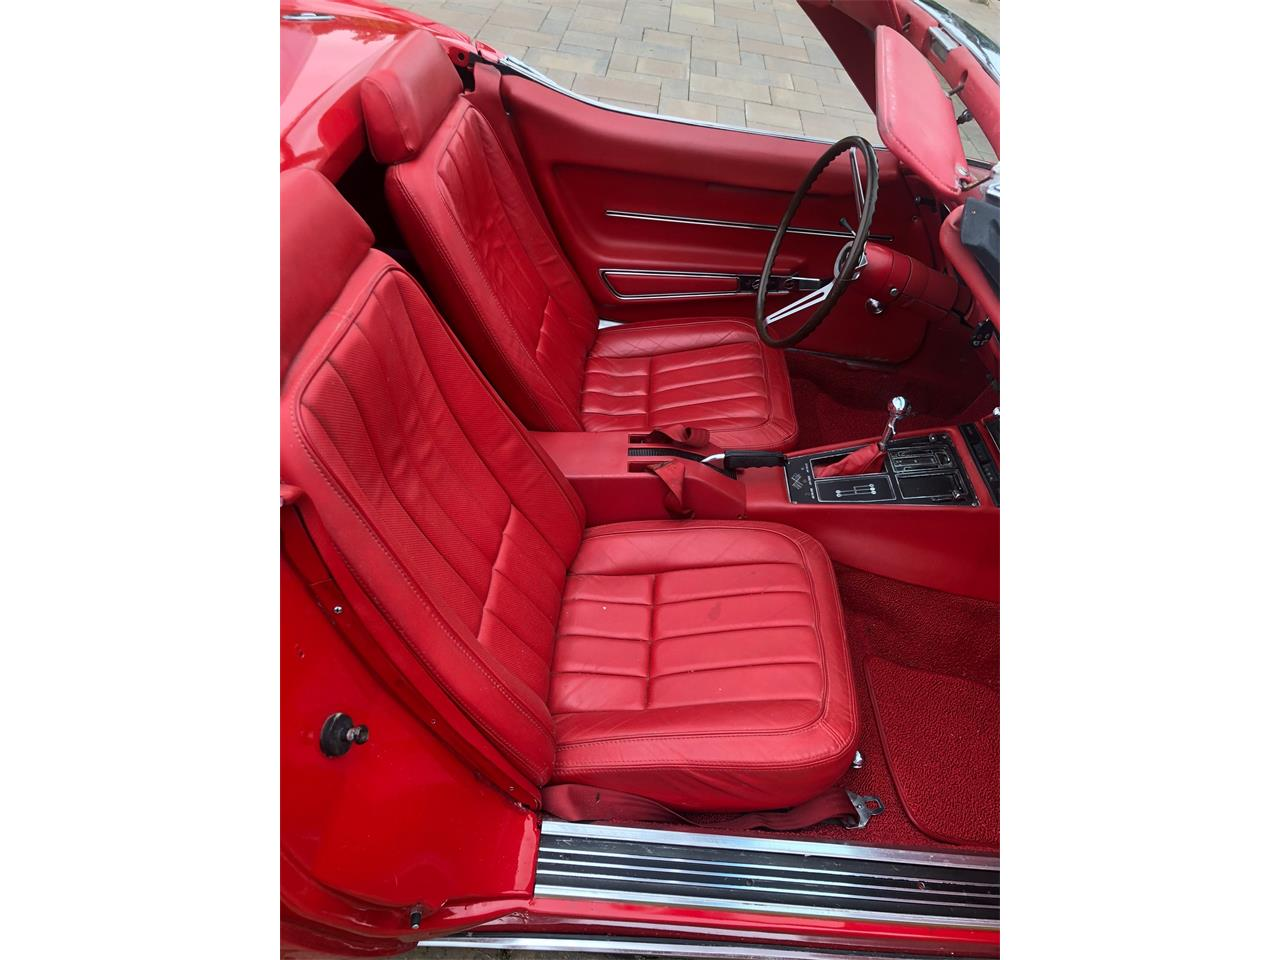 Large Picture of Classic 1968 Chevrolet Corvette located in Monroe North Carolina - $30,000.00 Offered by a Private Seller - QH2G